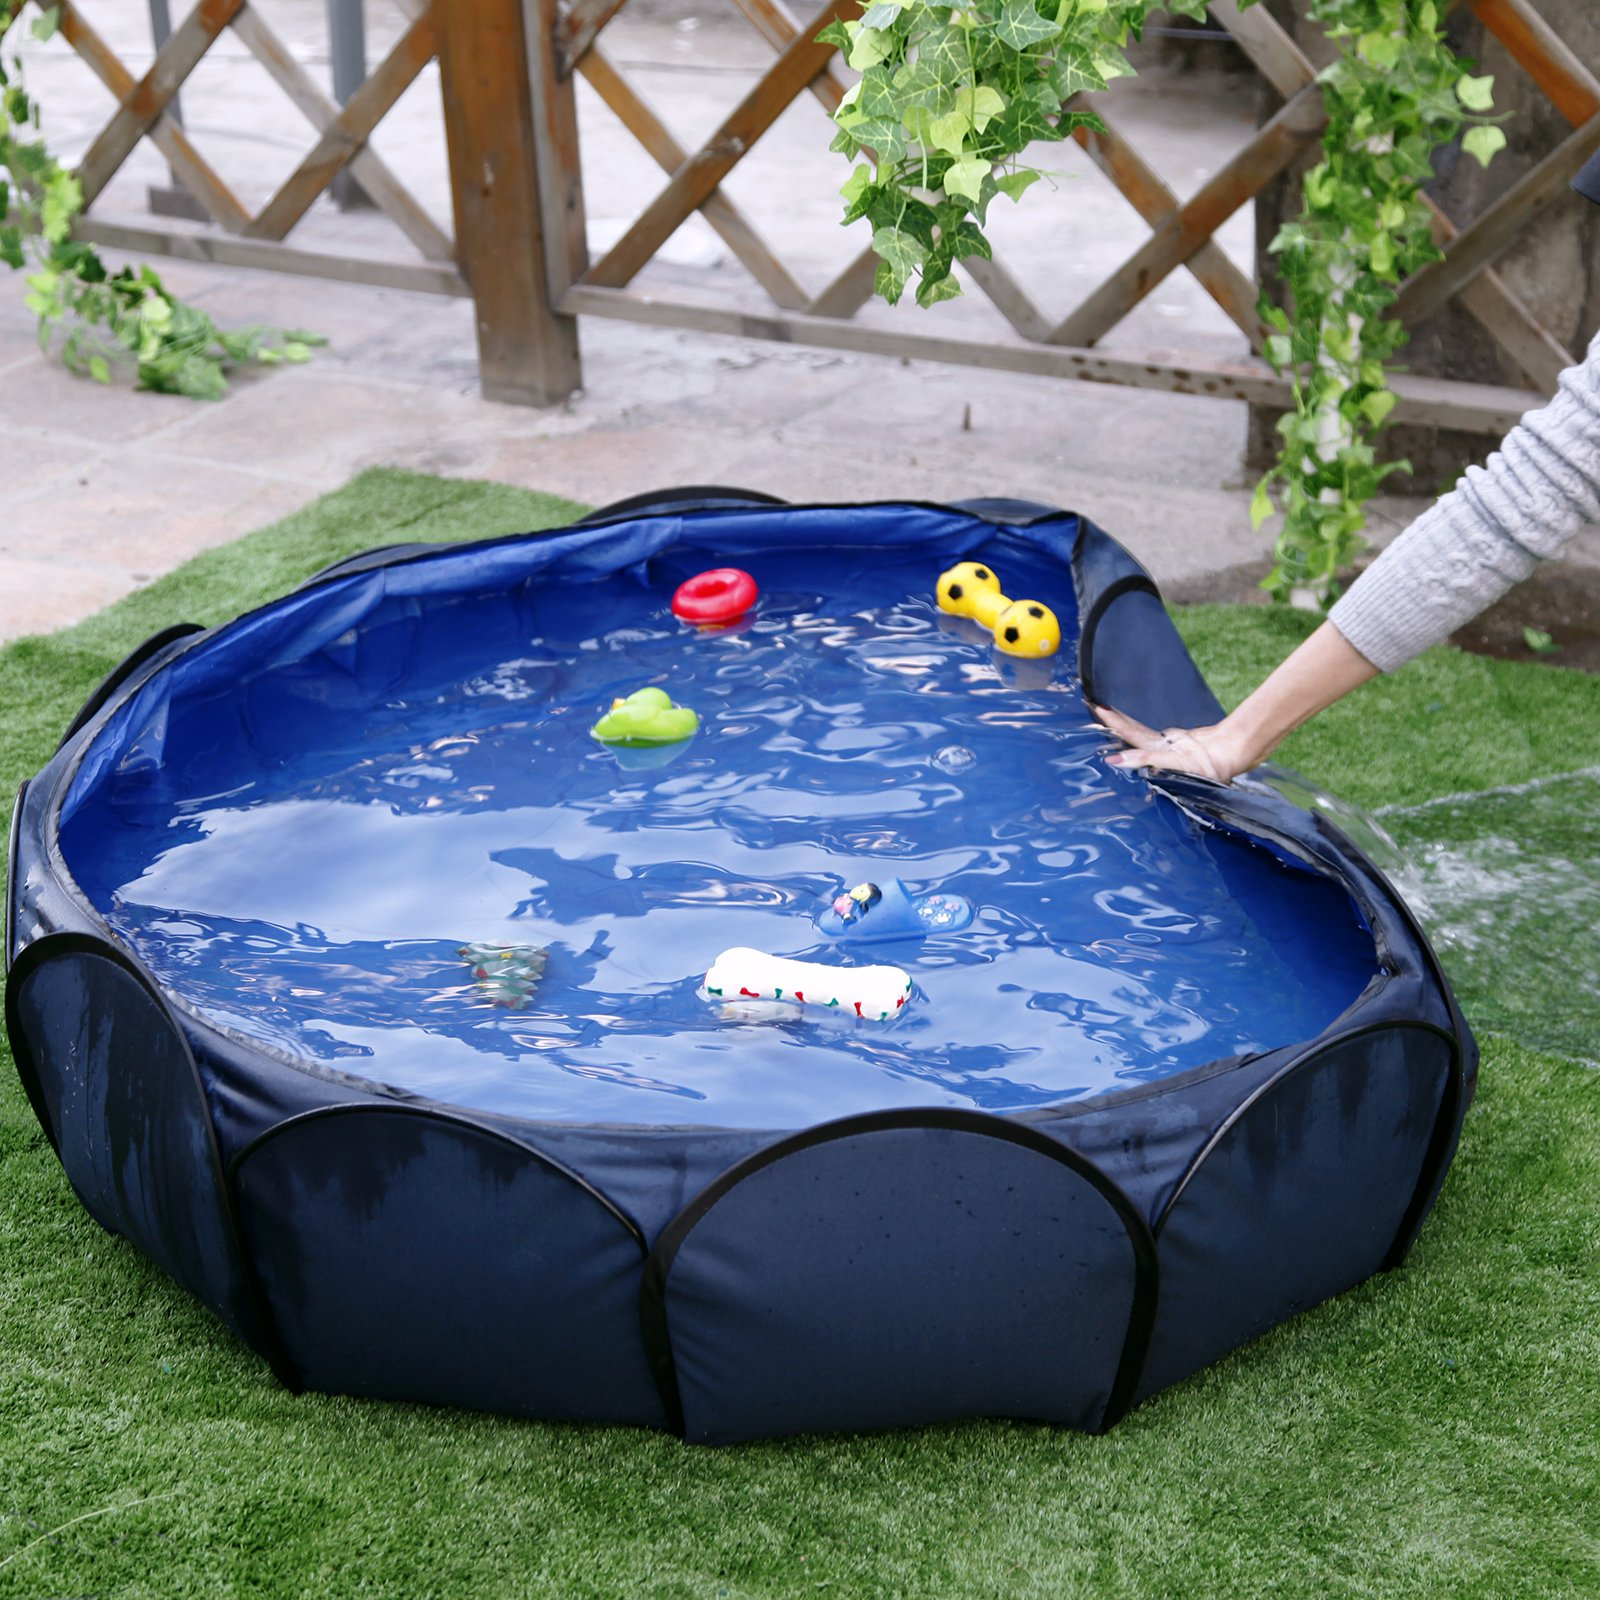 Petsfit 41'' Foldable and Portable Pet Swimming Pool/Outdoor Pet Bathing Tub Sky Blue